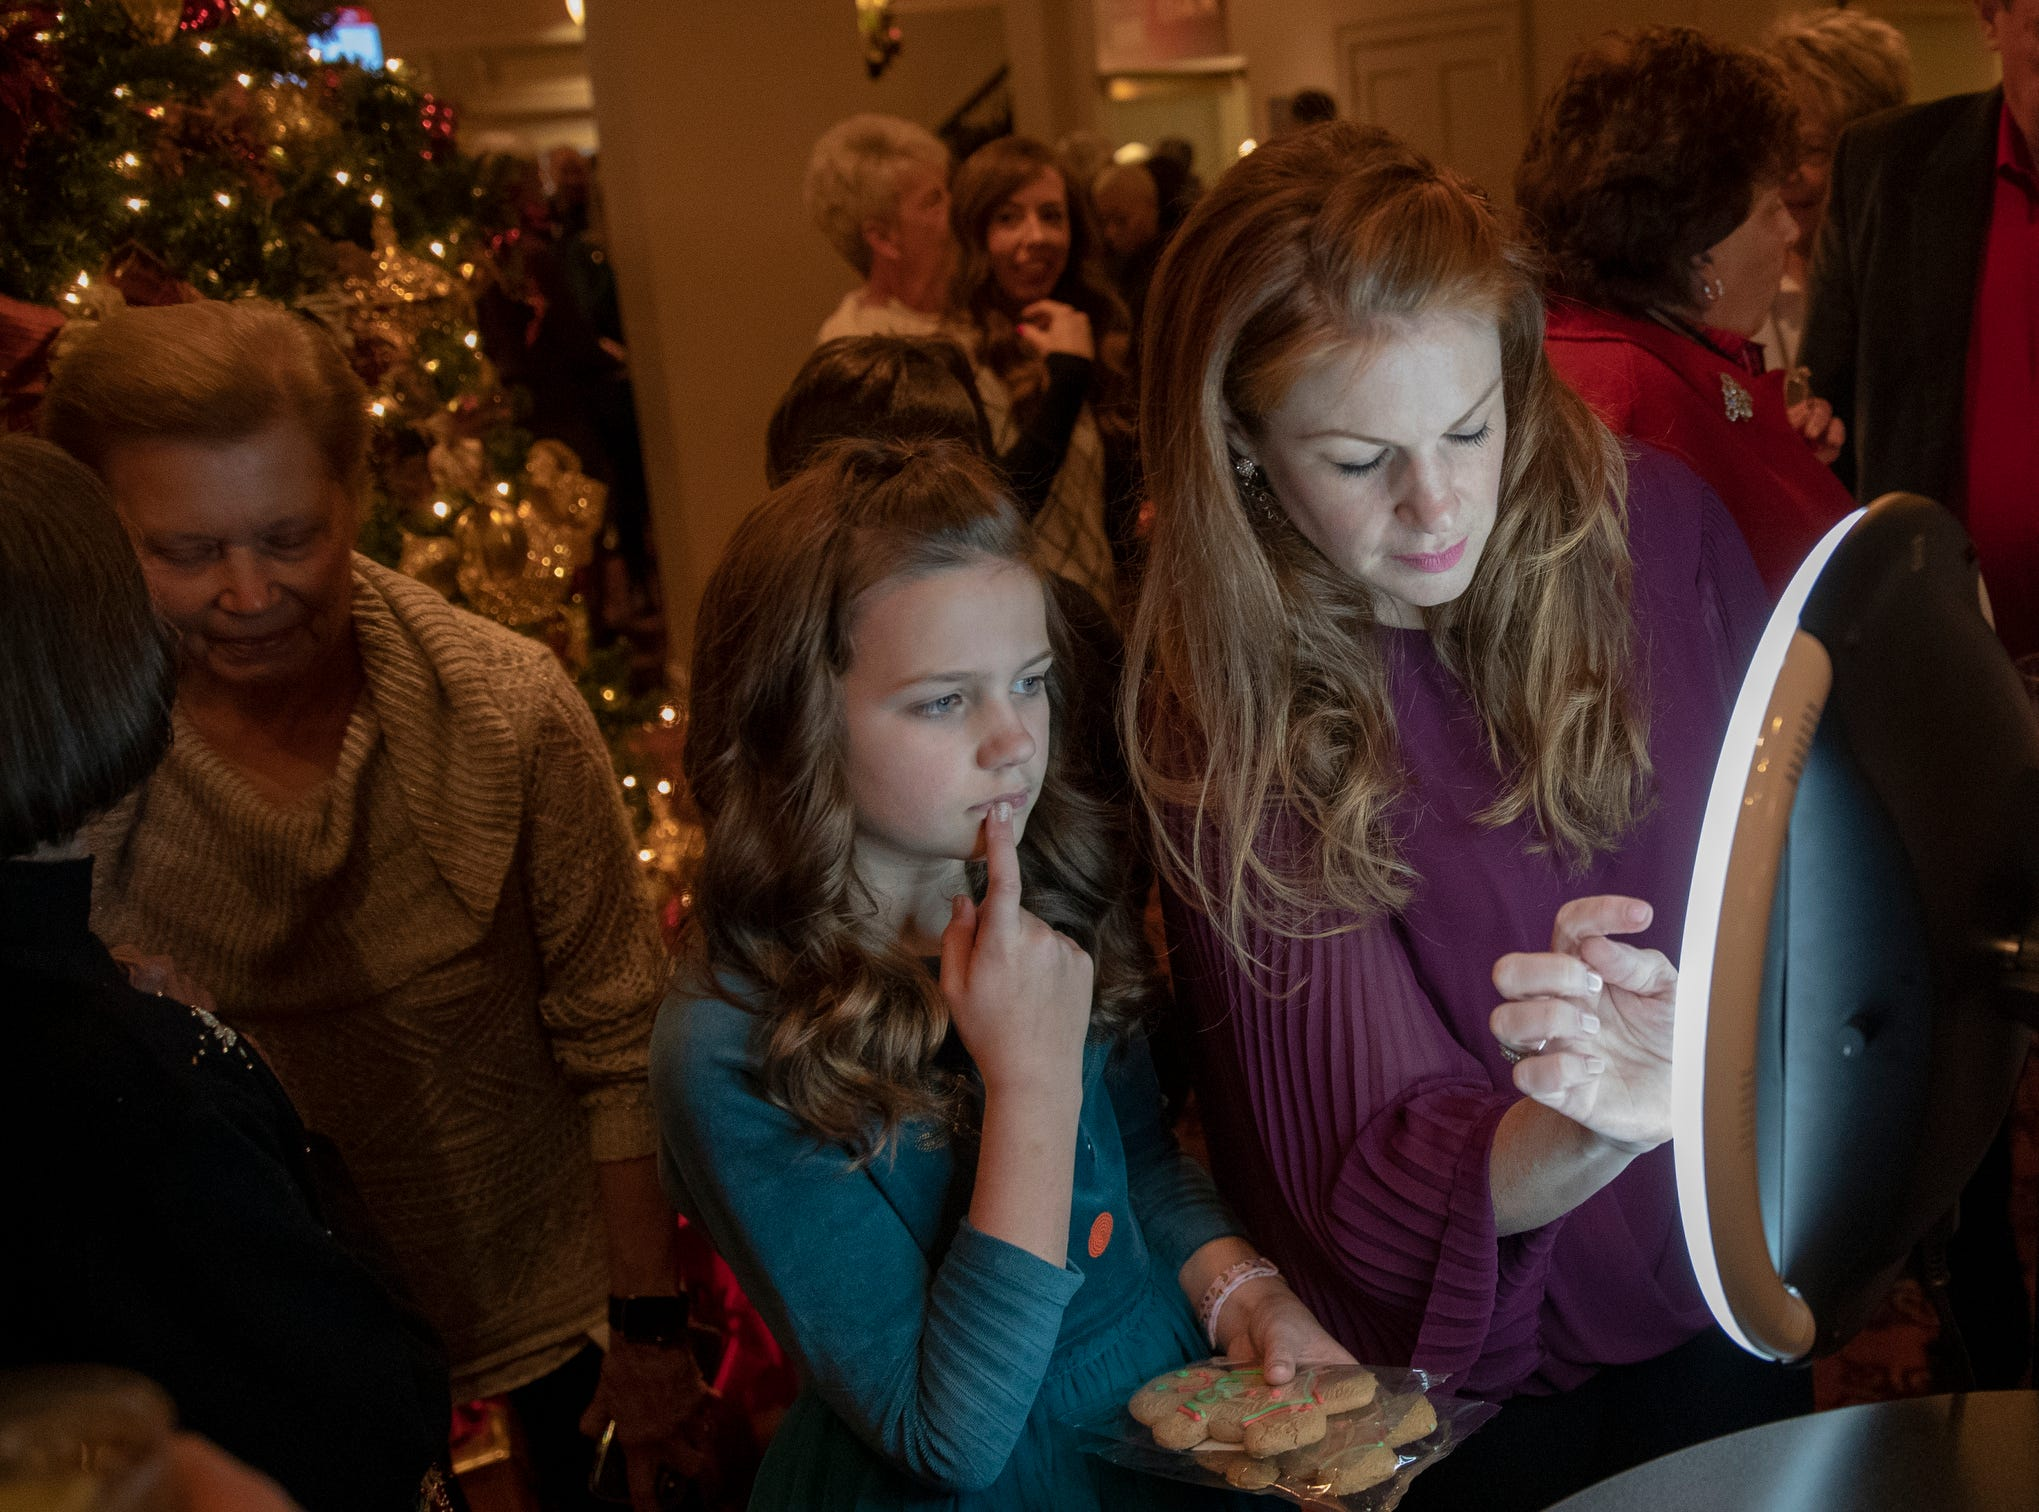 Maren Smith, 9, and her mother Melissa Smith, Carmel, work with a selfie station that's in the lobby at Yuletide Celebration, showcasing the Indianapolis Symphony Orchestra, at Hilbert Circle Theater, Indianapolis, Sunday. Dec. 23, 2018. The extravaganza features dancing, holiday songs, and skits.